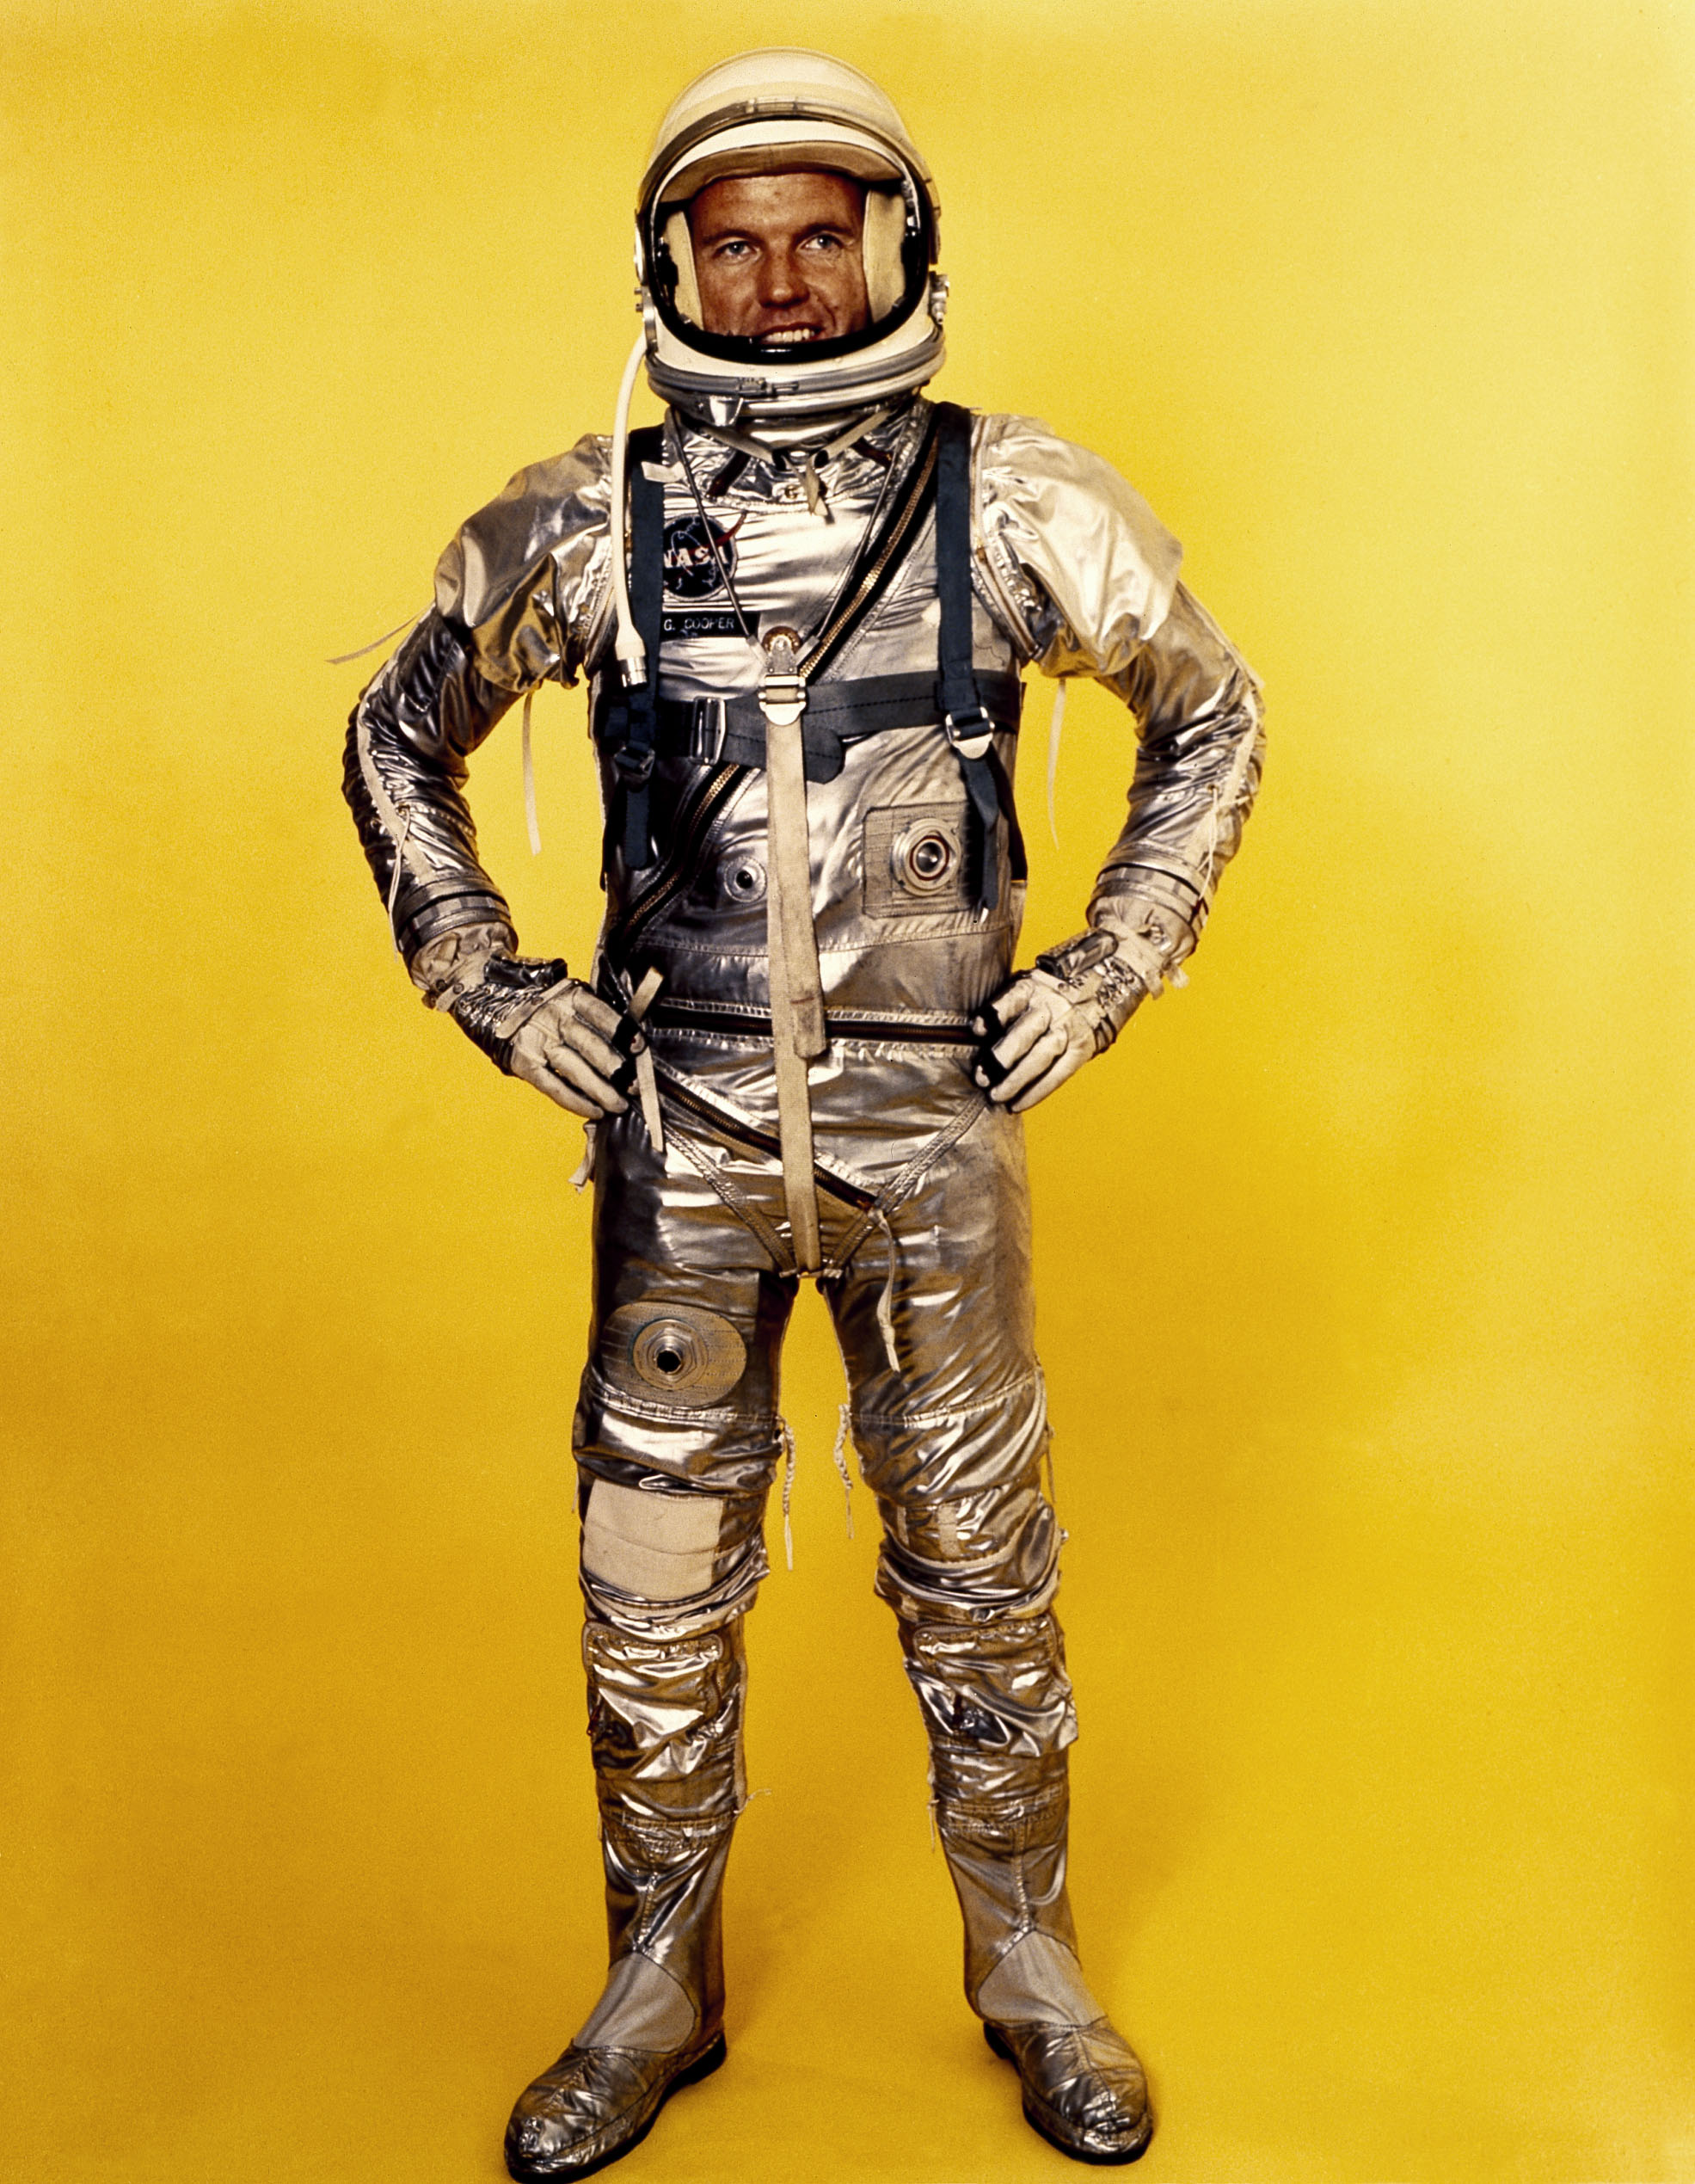 astronaut space suit - photo #42